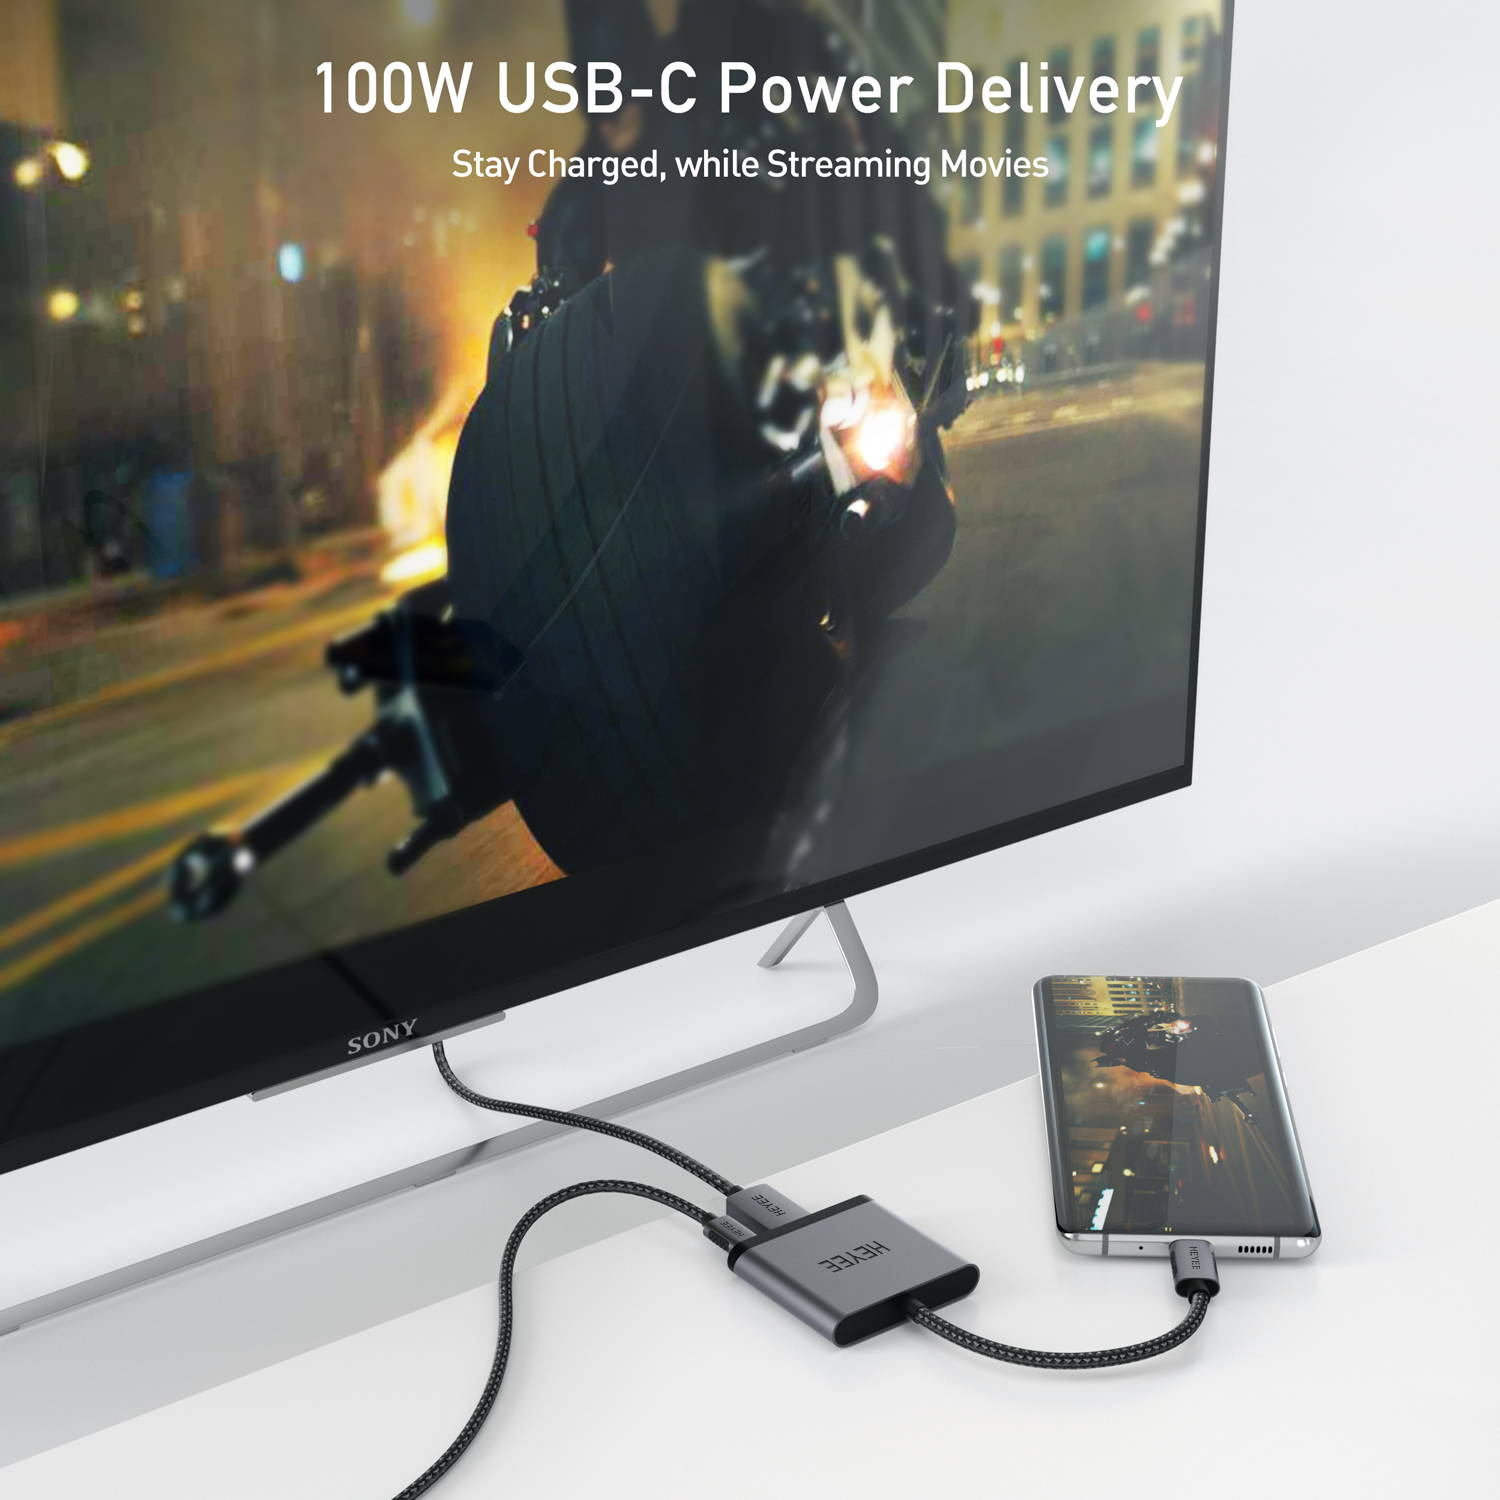 USB-C 3-IN-1 HUB - 4K@30Hz/60Hz, 3 in 1 adapter, usb c to usb adapter, usb to hdmi adapter type c, apple 3 in 1 hub, hdmi adapter for macbook pro, hdmi adapter for ipad air 4, hdmi 1.4